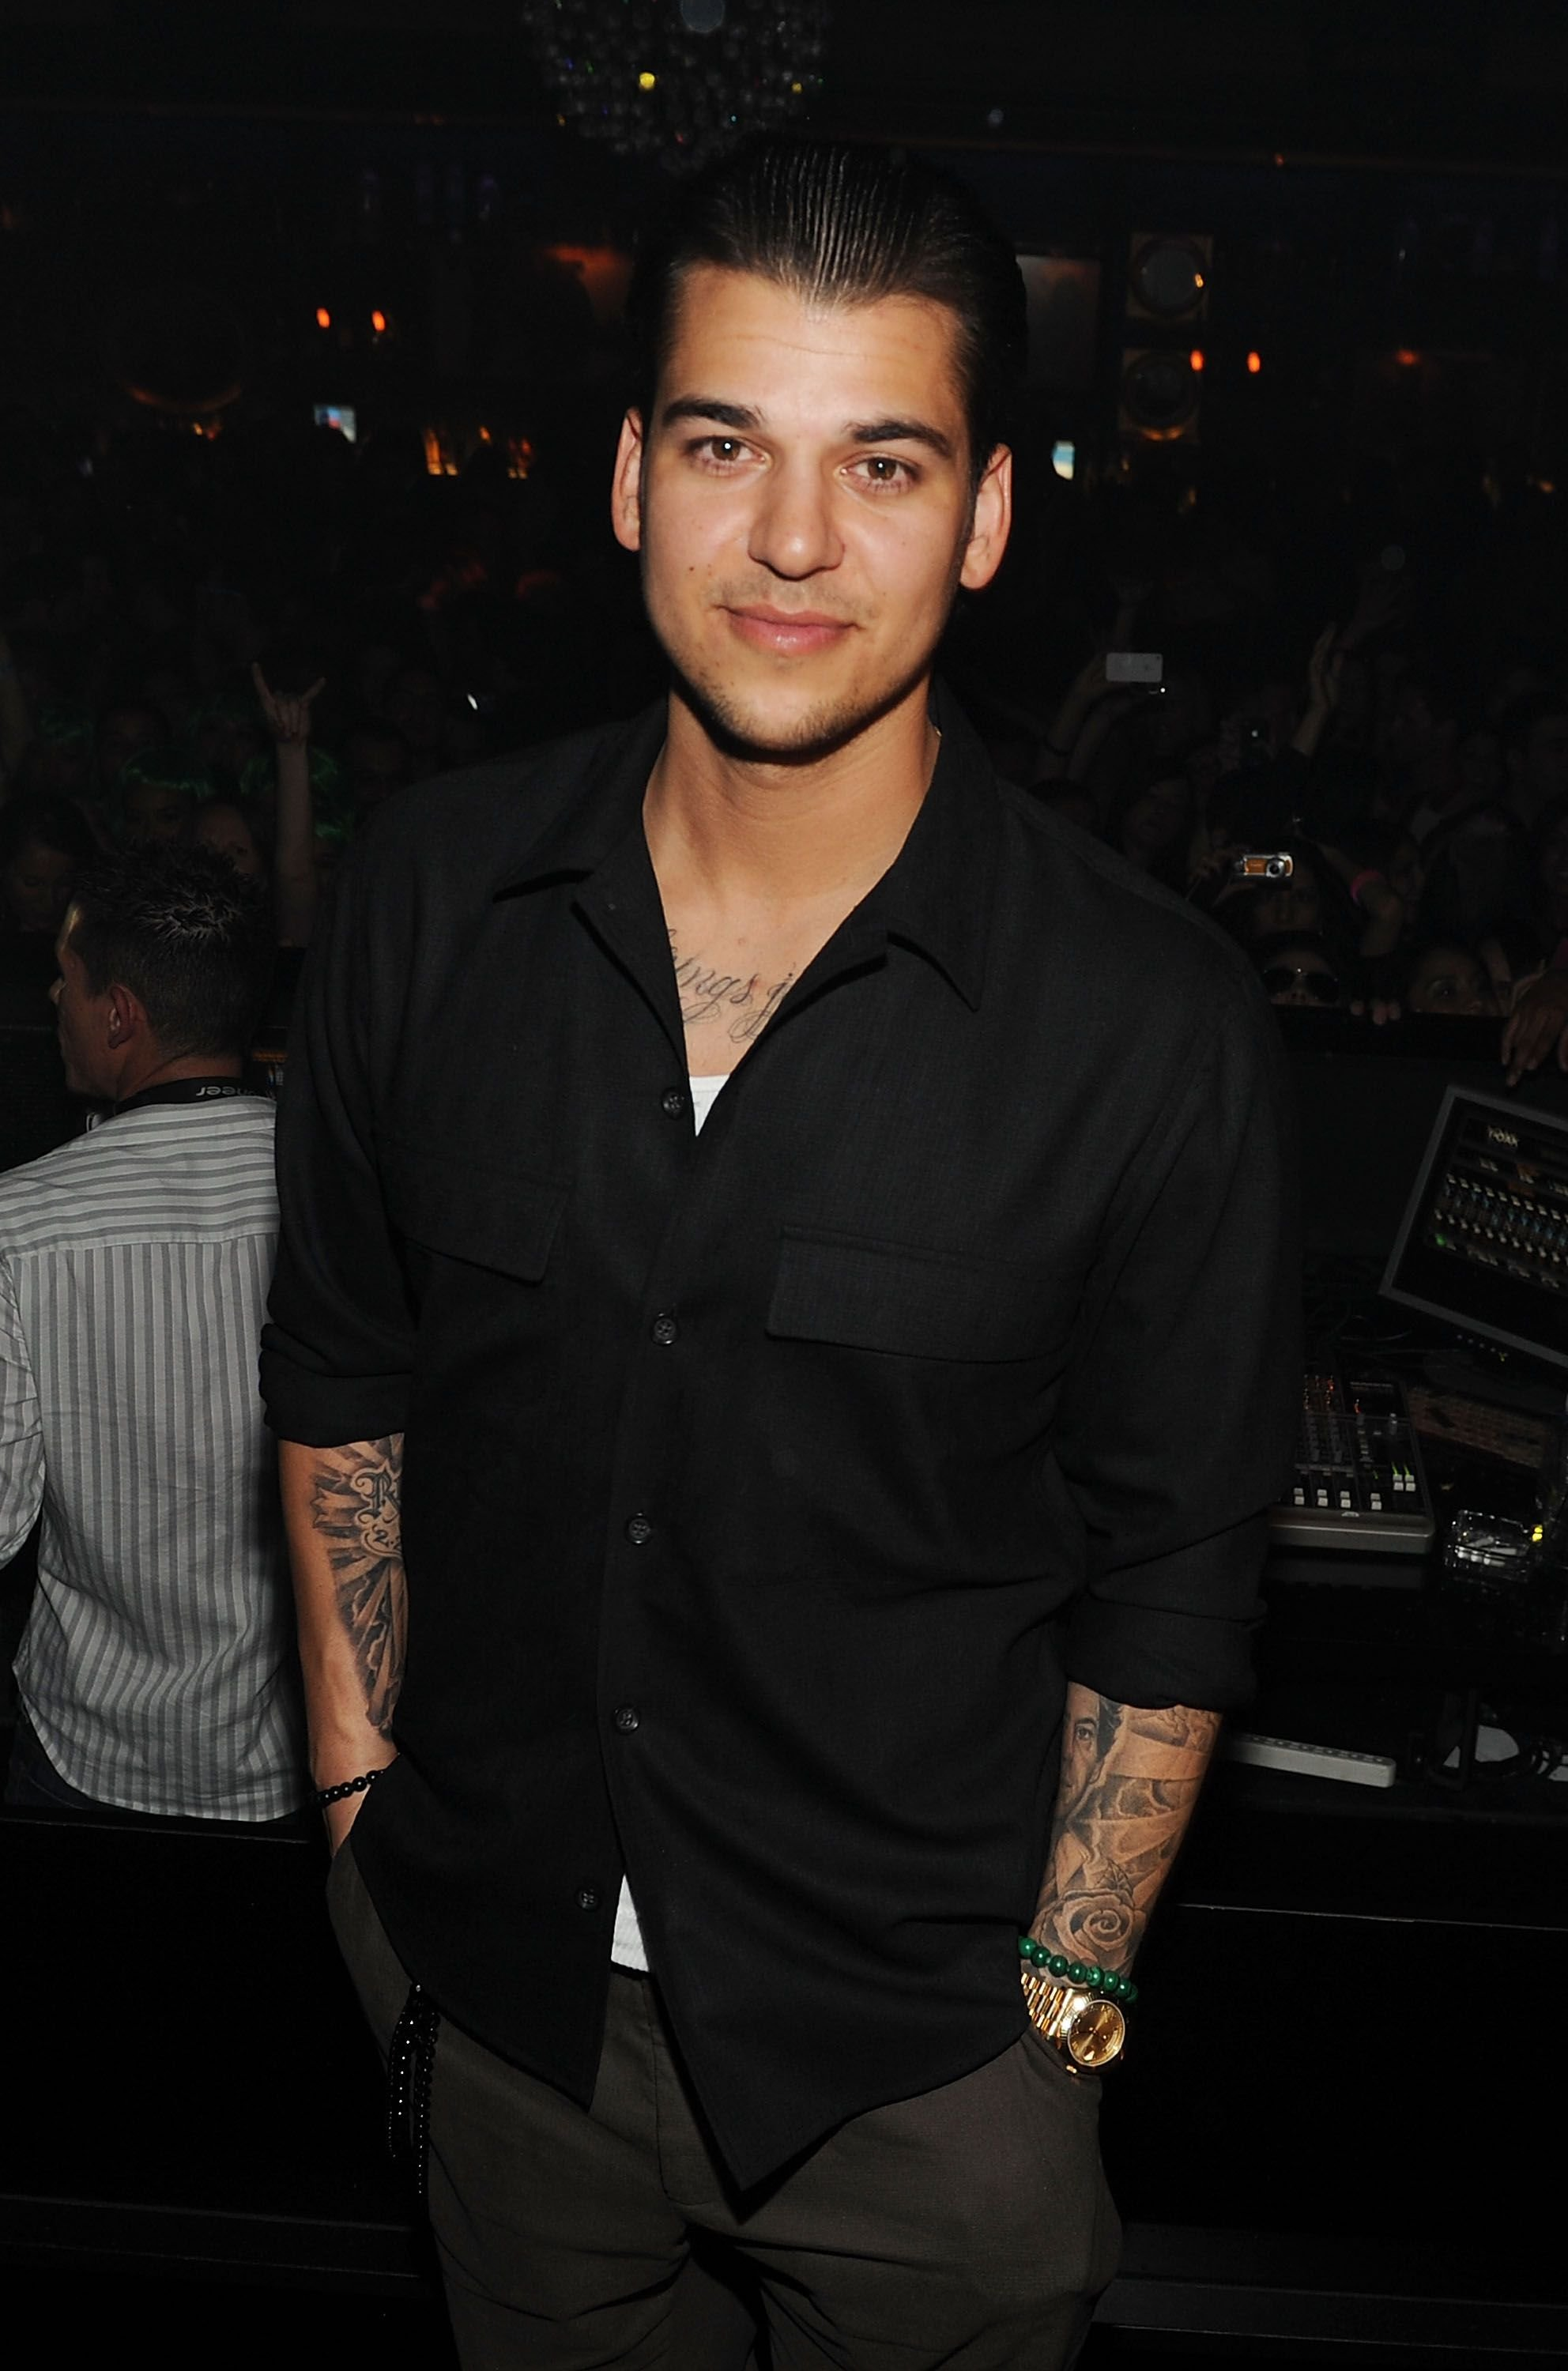 Rob Kardashian celebrates his birthday at 1 Oak  in Las Vegas, Nevada on March 16, 2012 | Photo: Getty Images